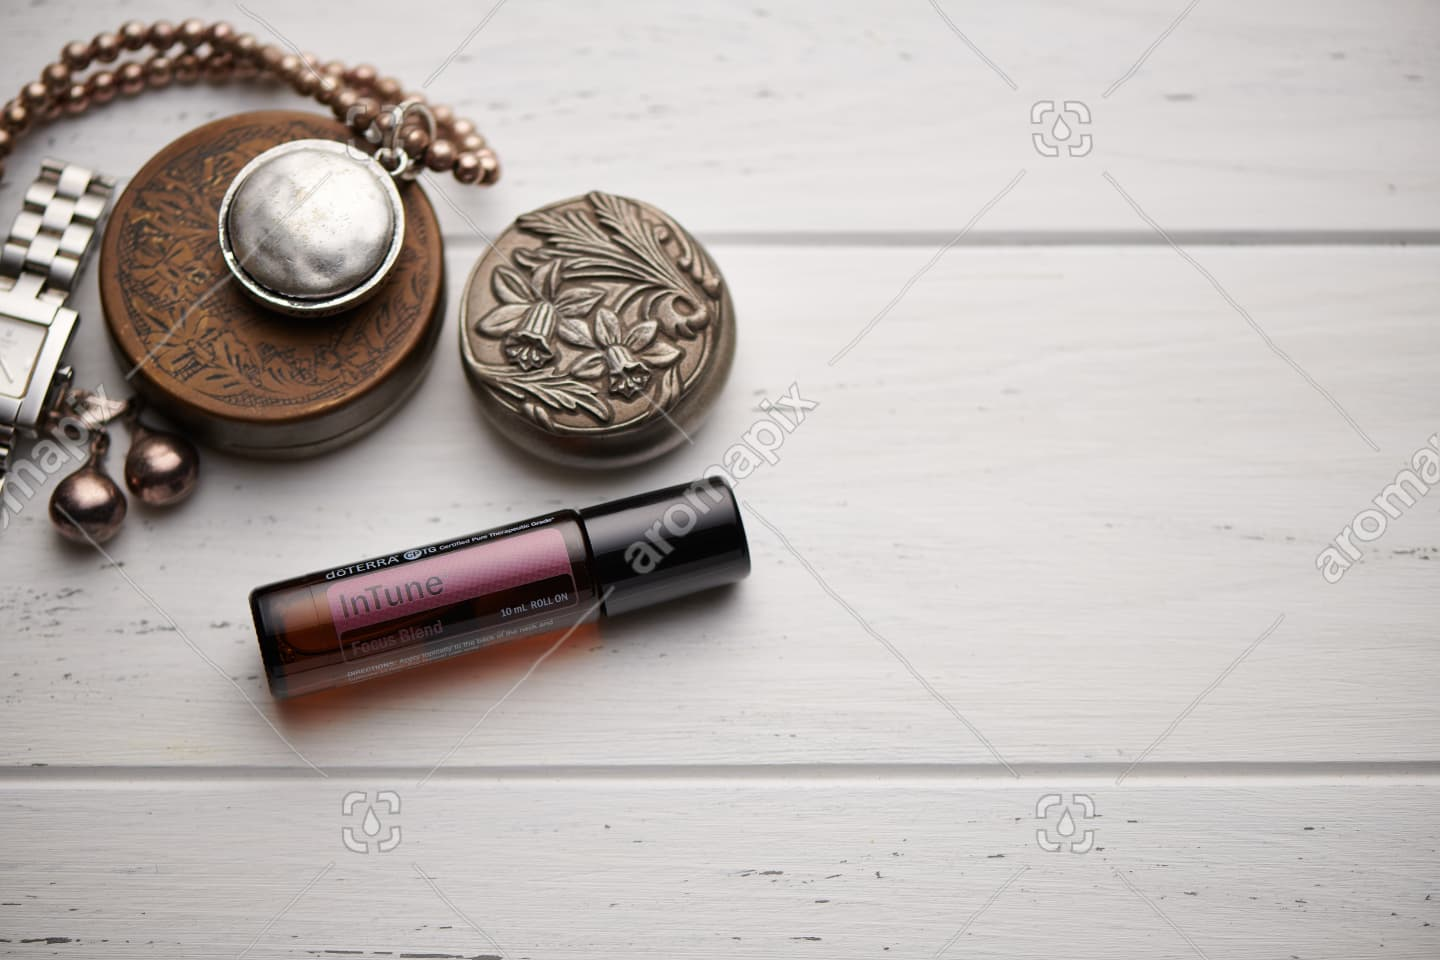 doTERRA InTune on rustic background